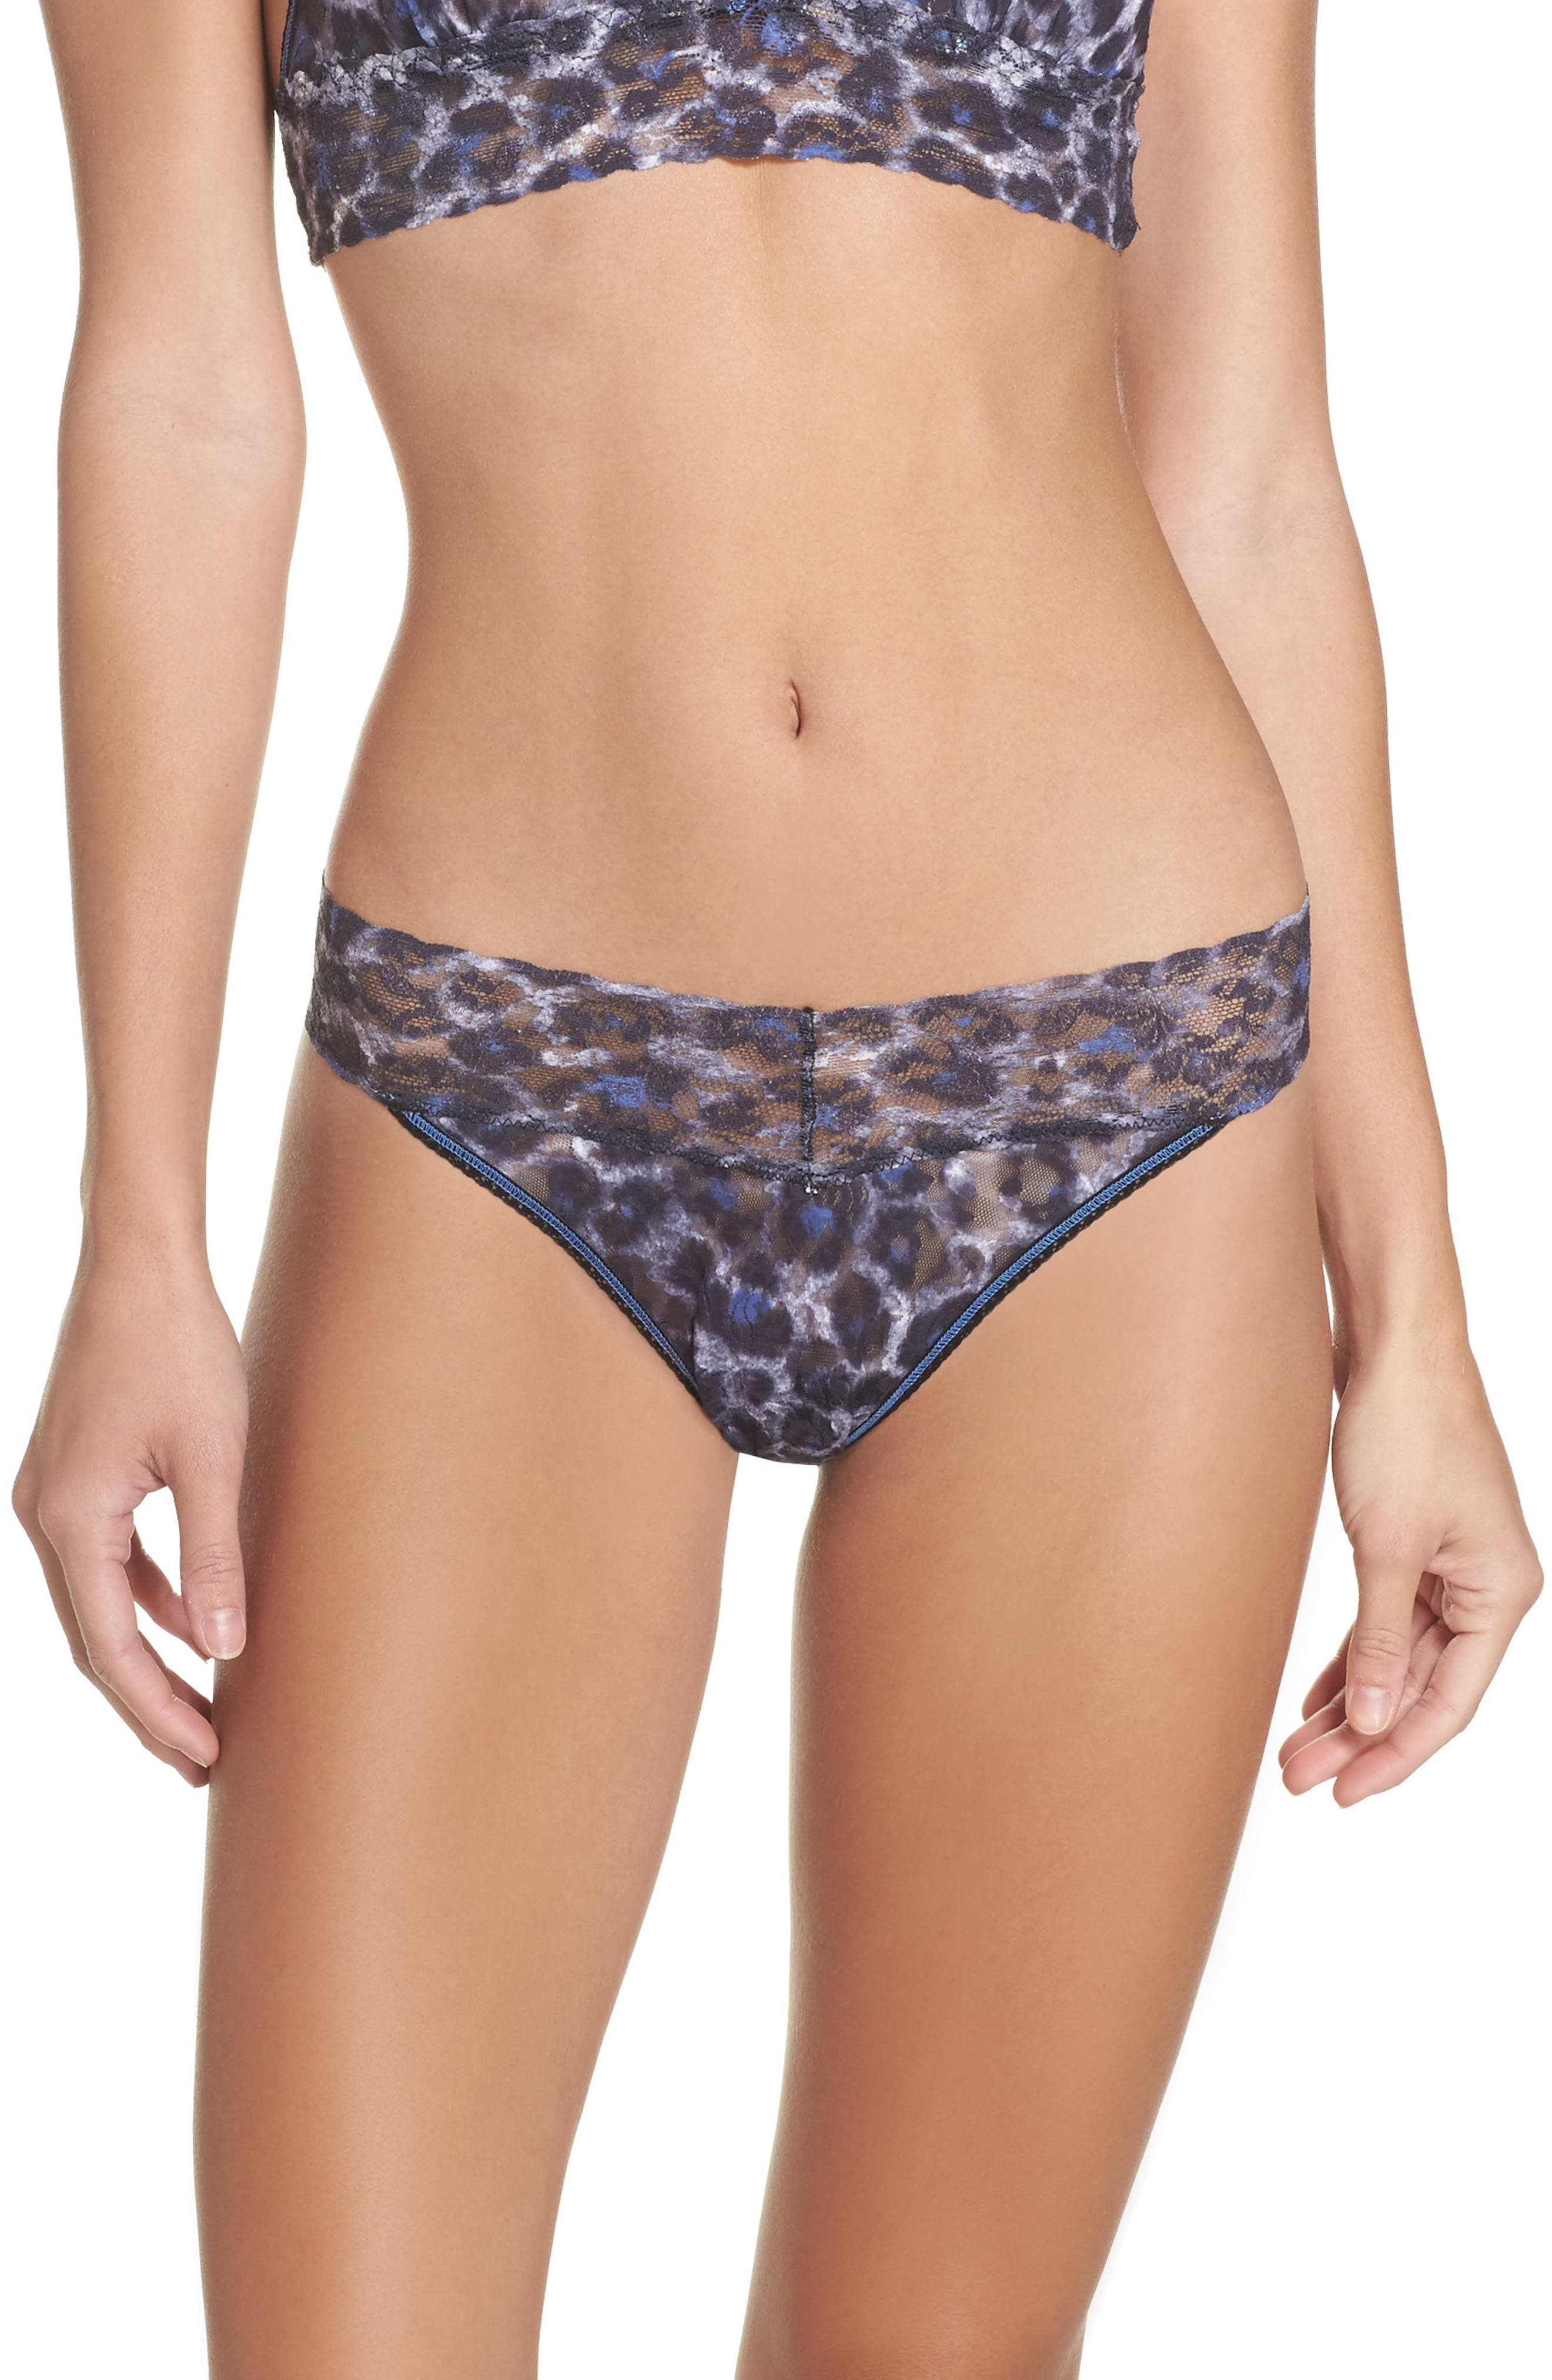 Alternate Image 1 Selected - Hanky Panky Mysterious Feline Original Rise Thong